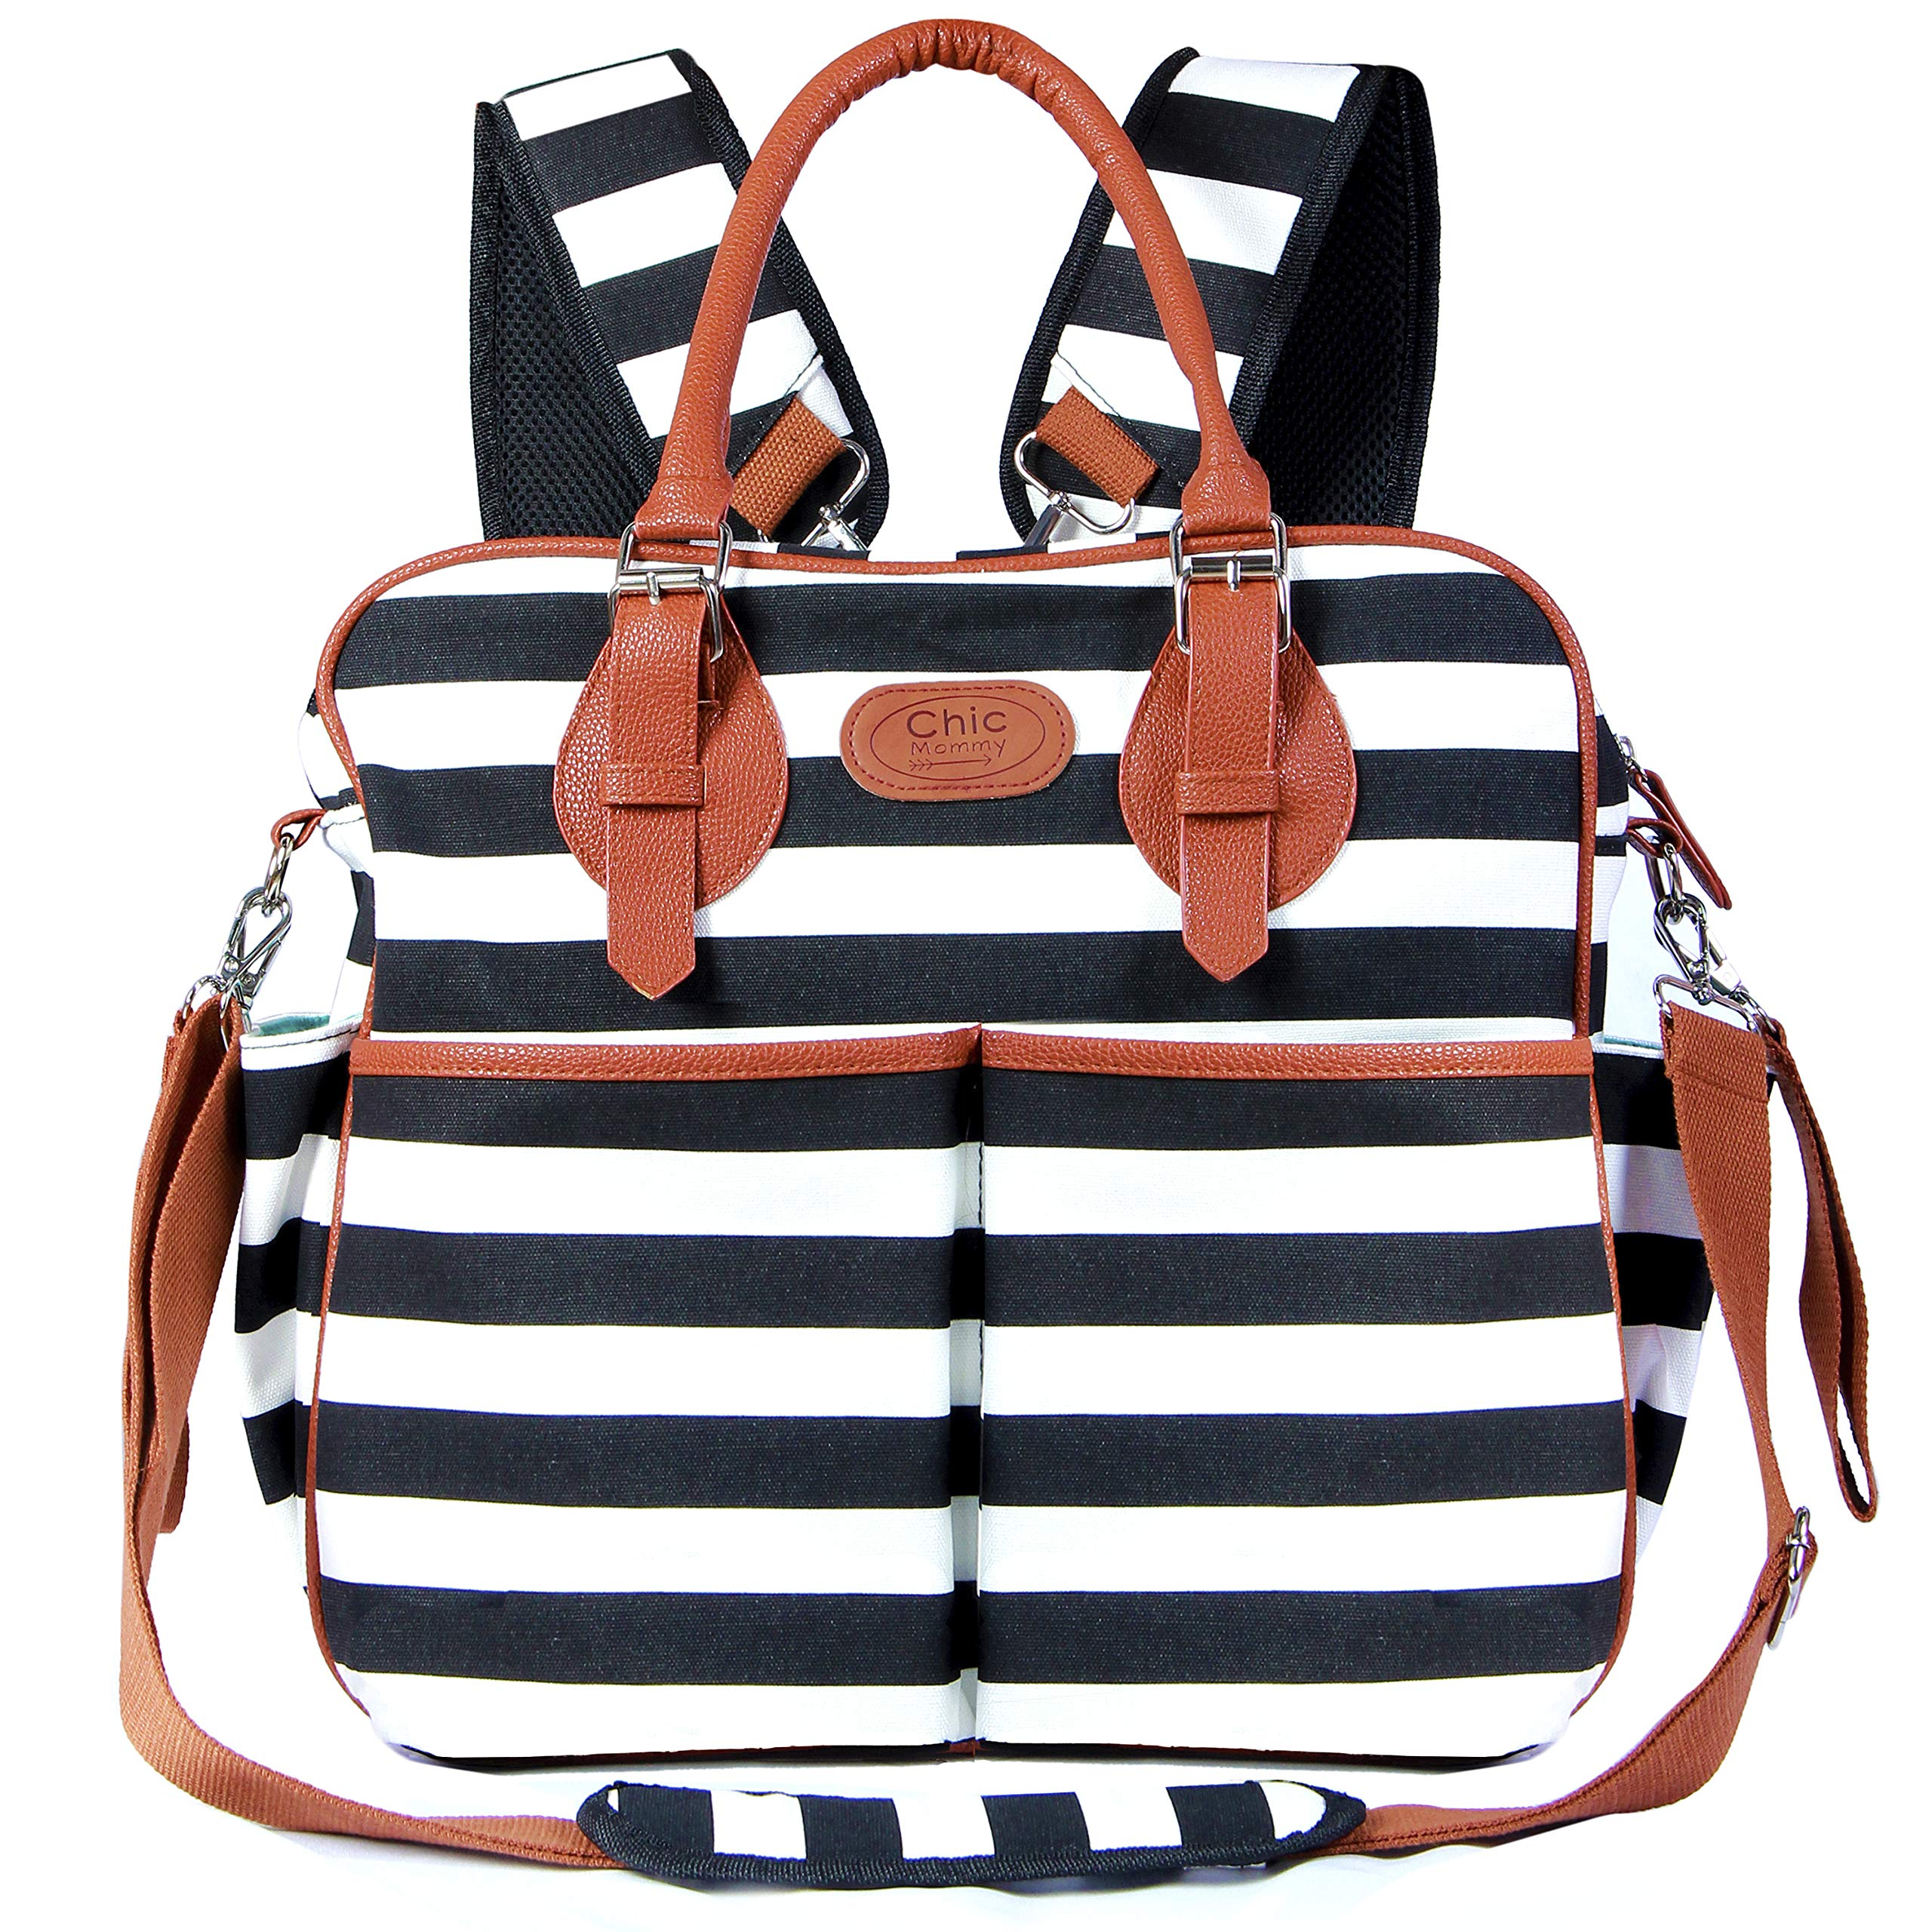 2018 Travel bag for Women Canvas Weekender Overnight Carry-on Shoulder Duffel Tote Bag